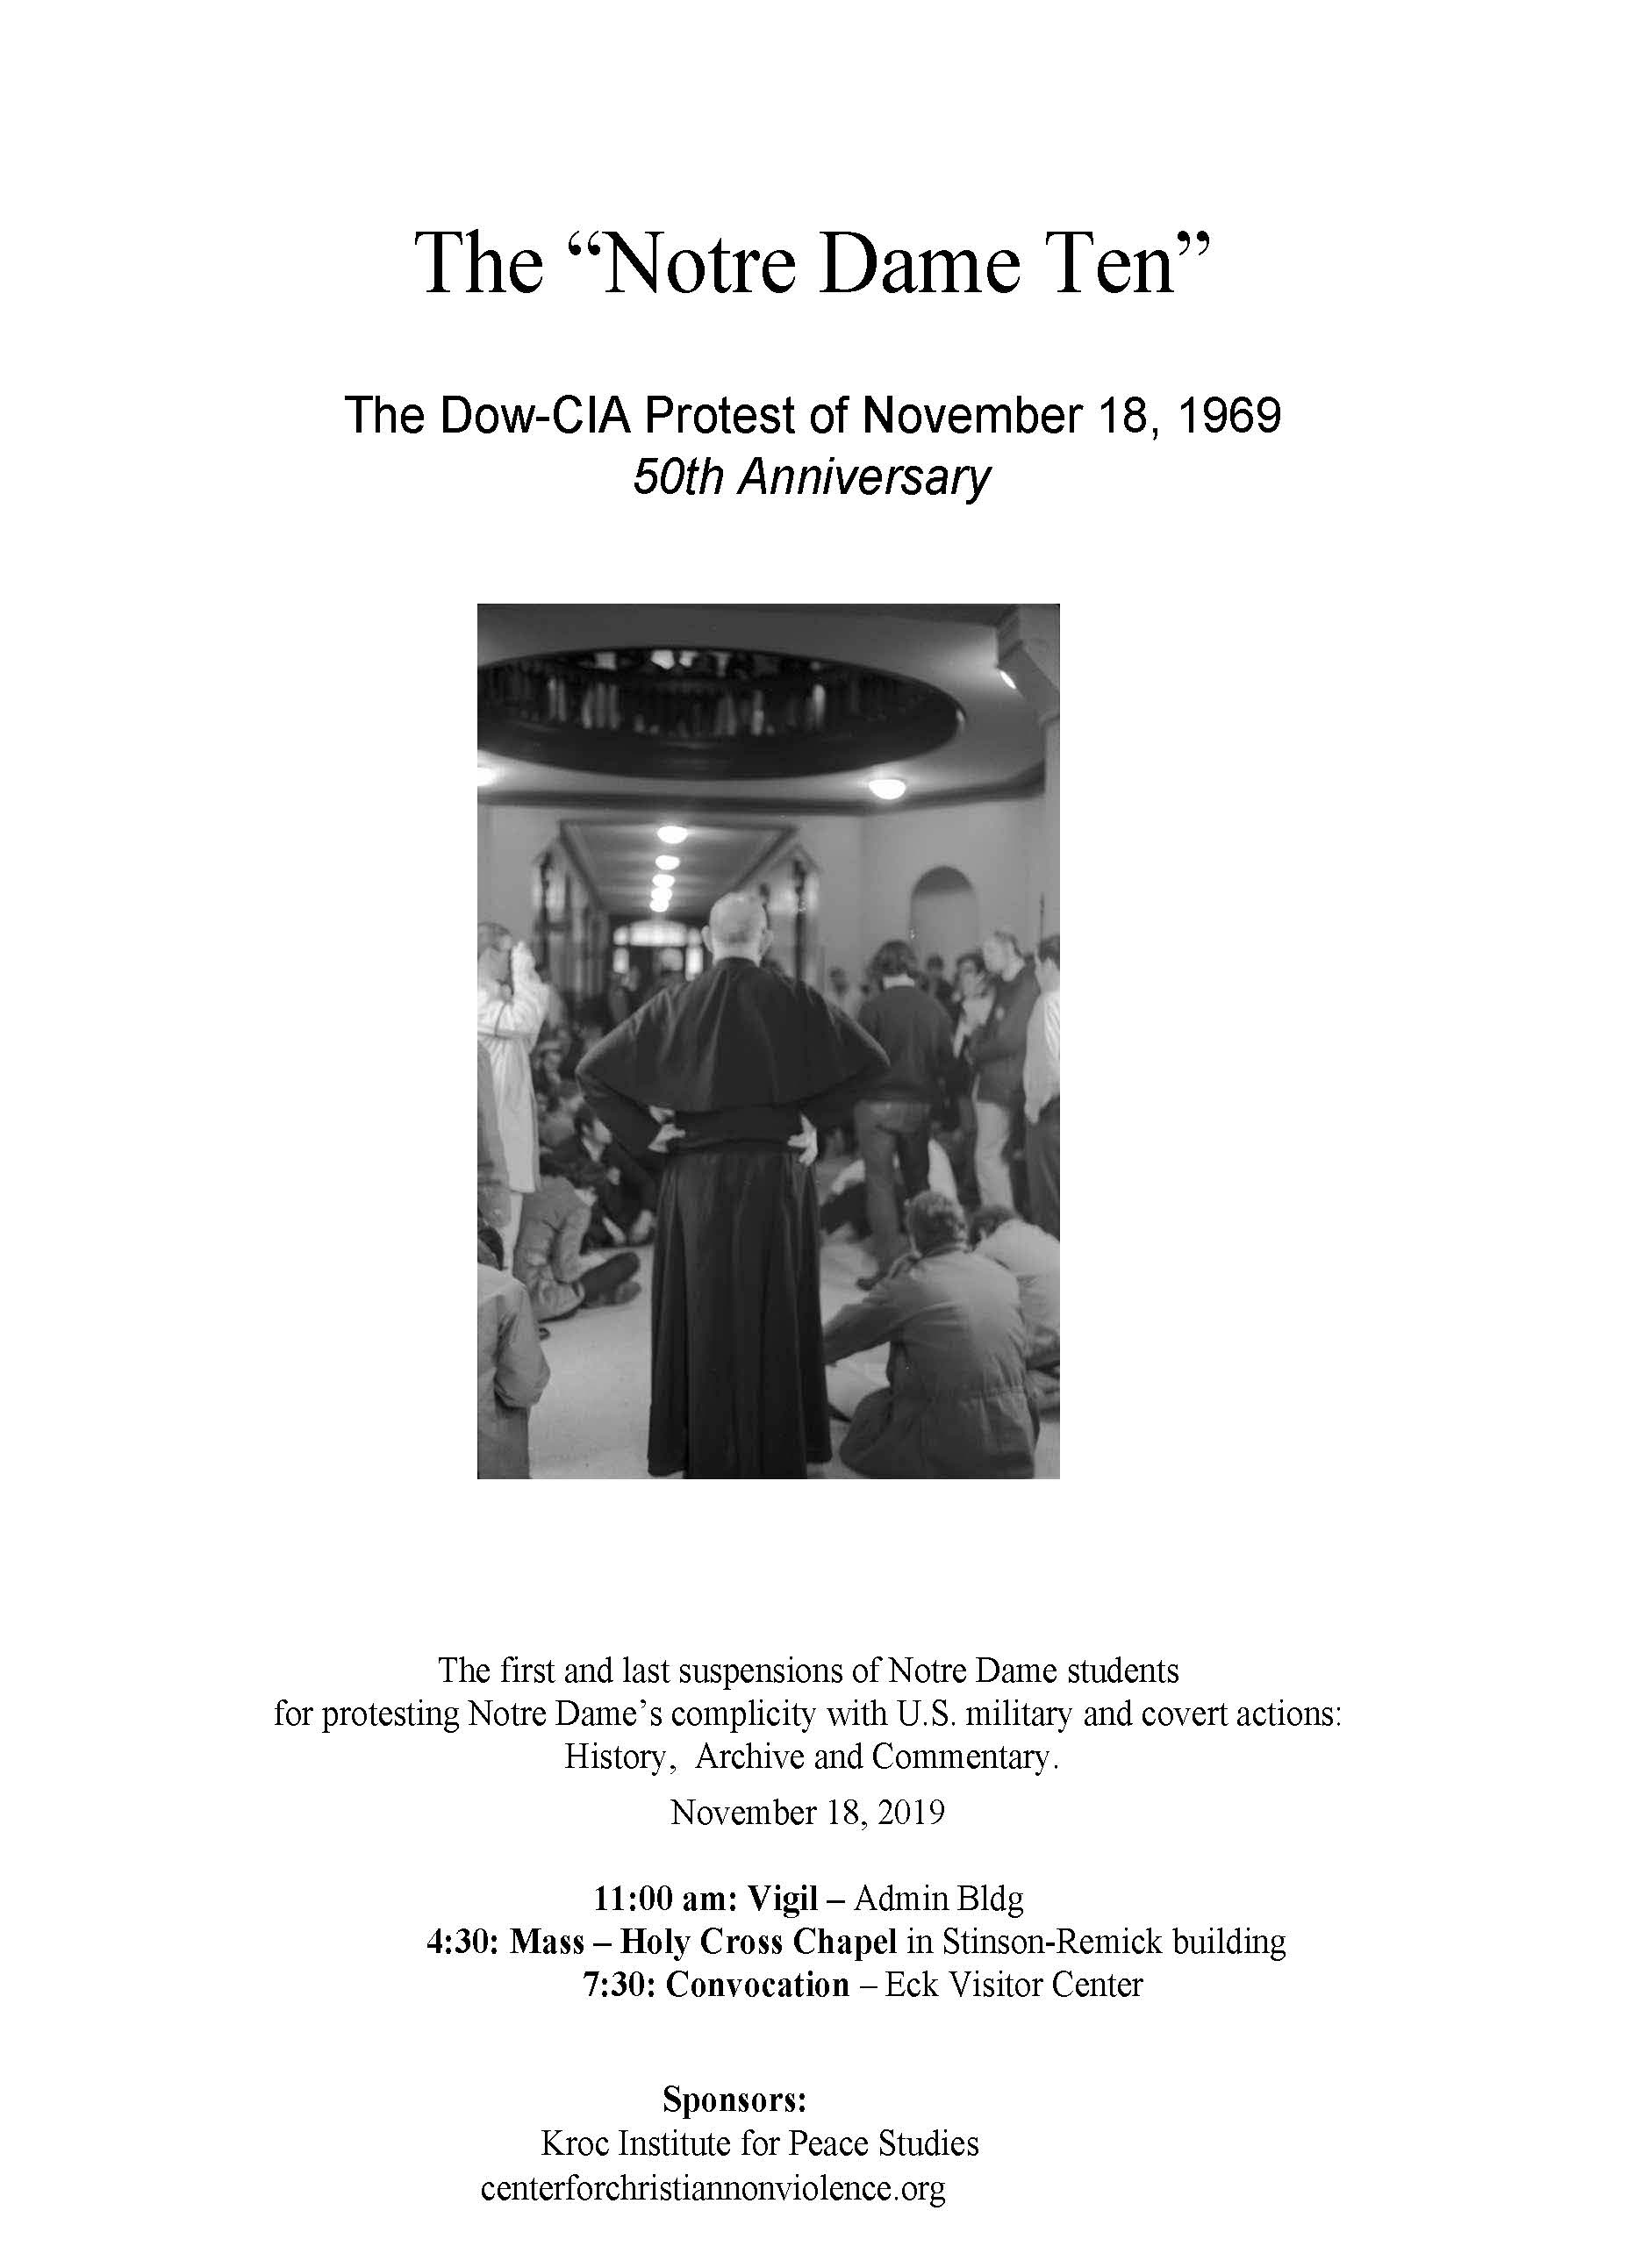 The Notre Dame Ten: The Dow-CIA Protest of November 18, 1969 - Publication (PDF) by Mark J. Mahoney